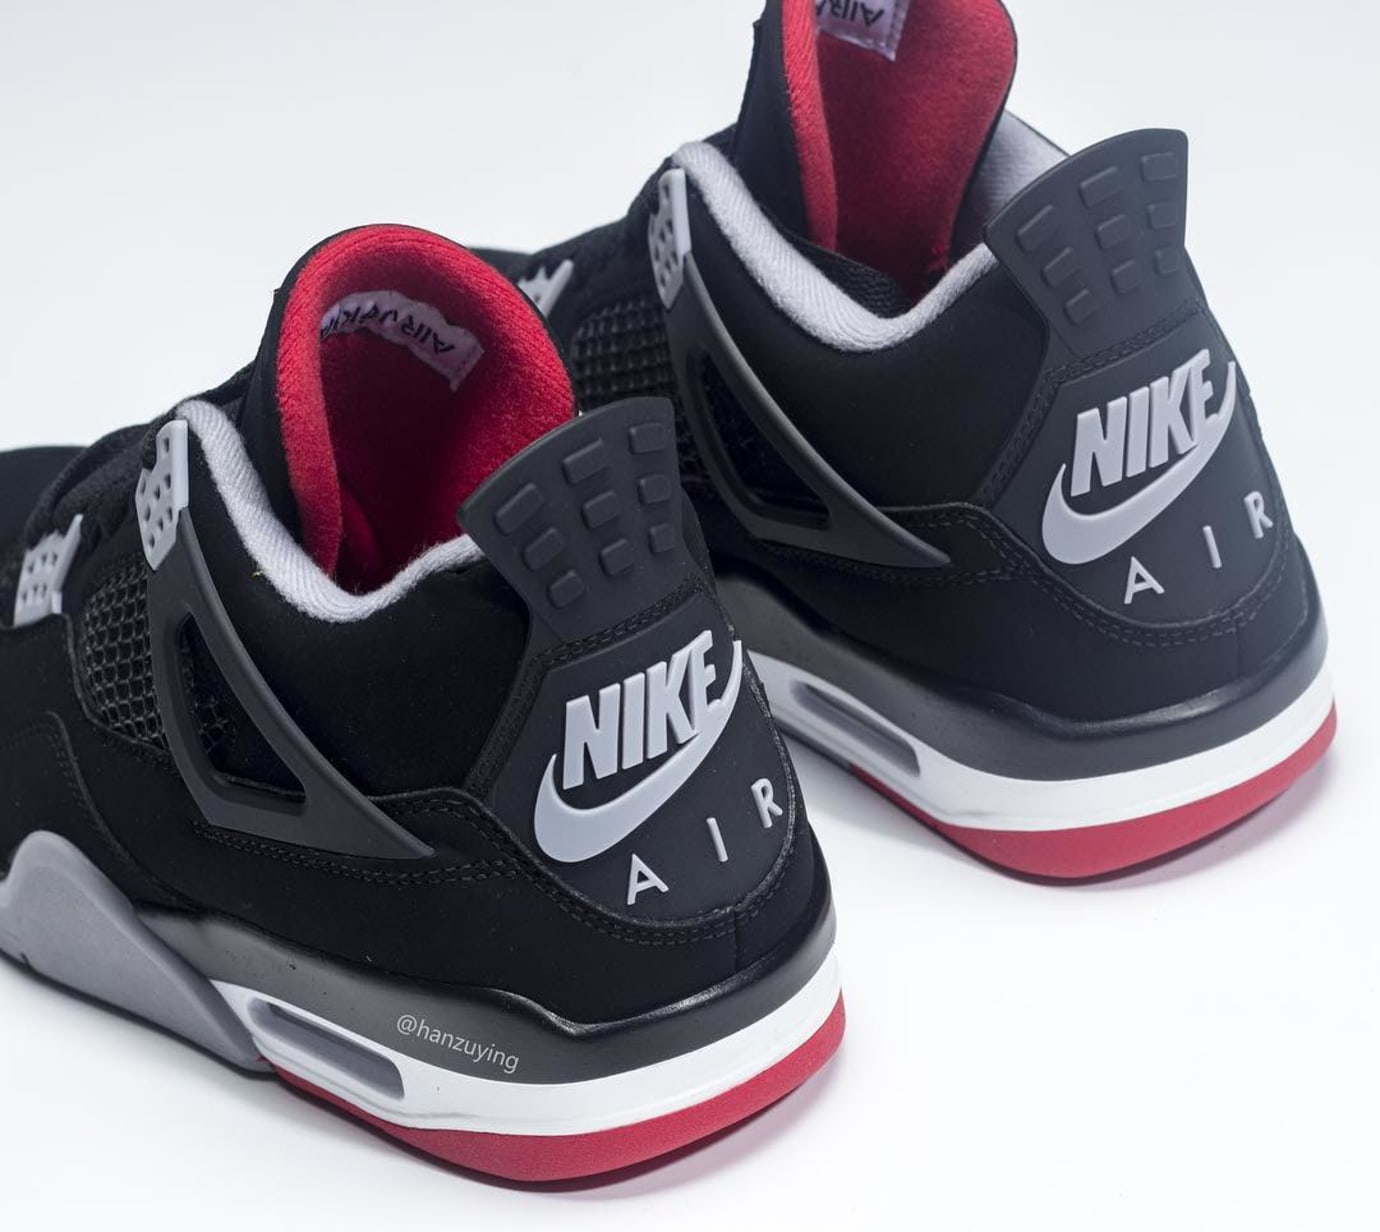 Air Jordan 4 Retro 'Bred' 2019 308497-060 Heel